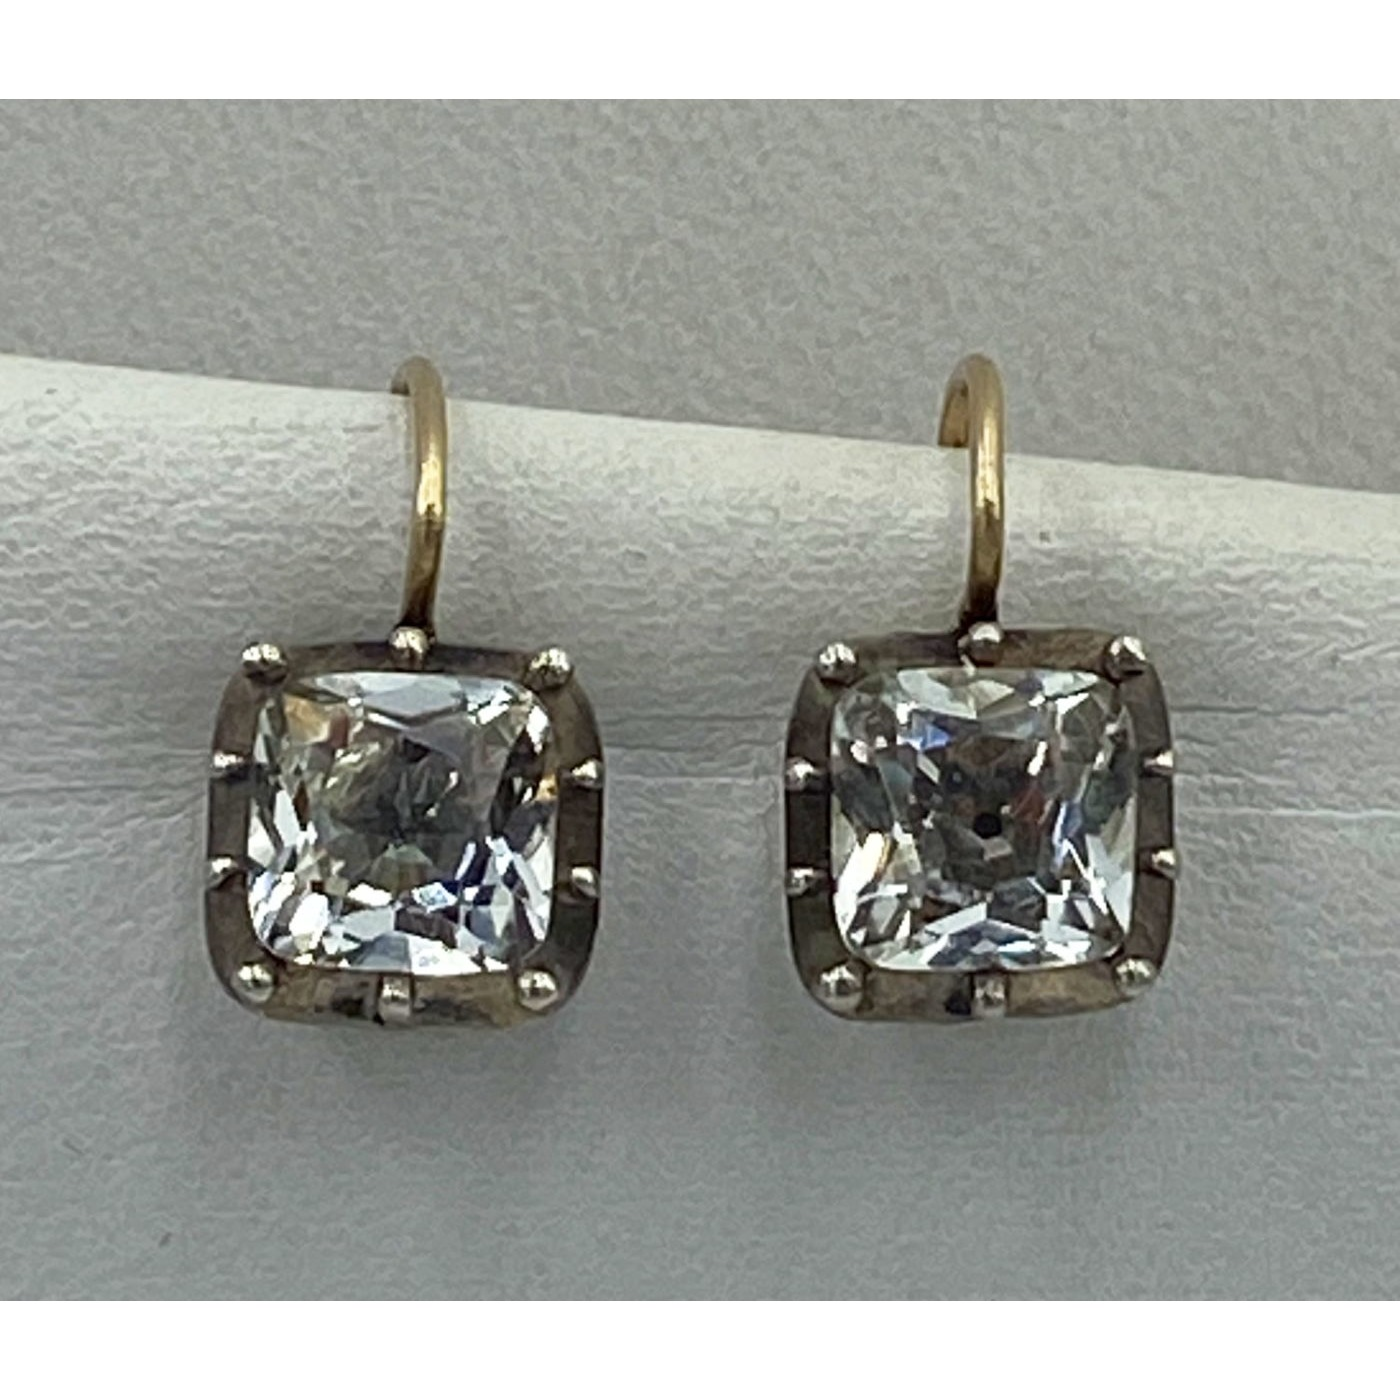 Early Unusual Square Prong Set Rock Crystal Earrings 15kt Gold Wires